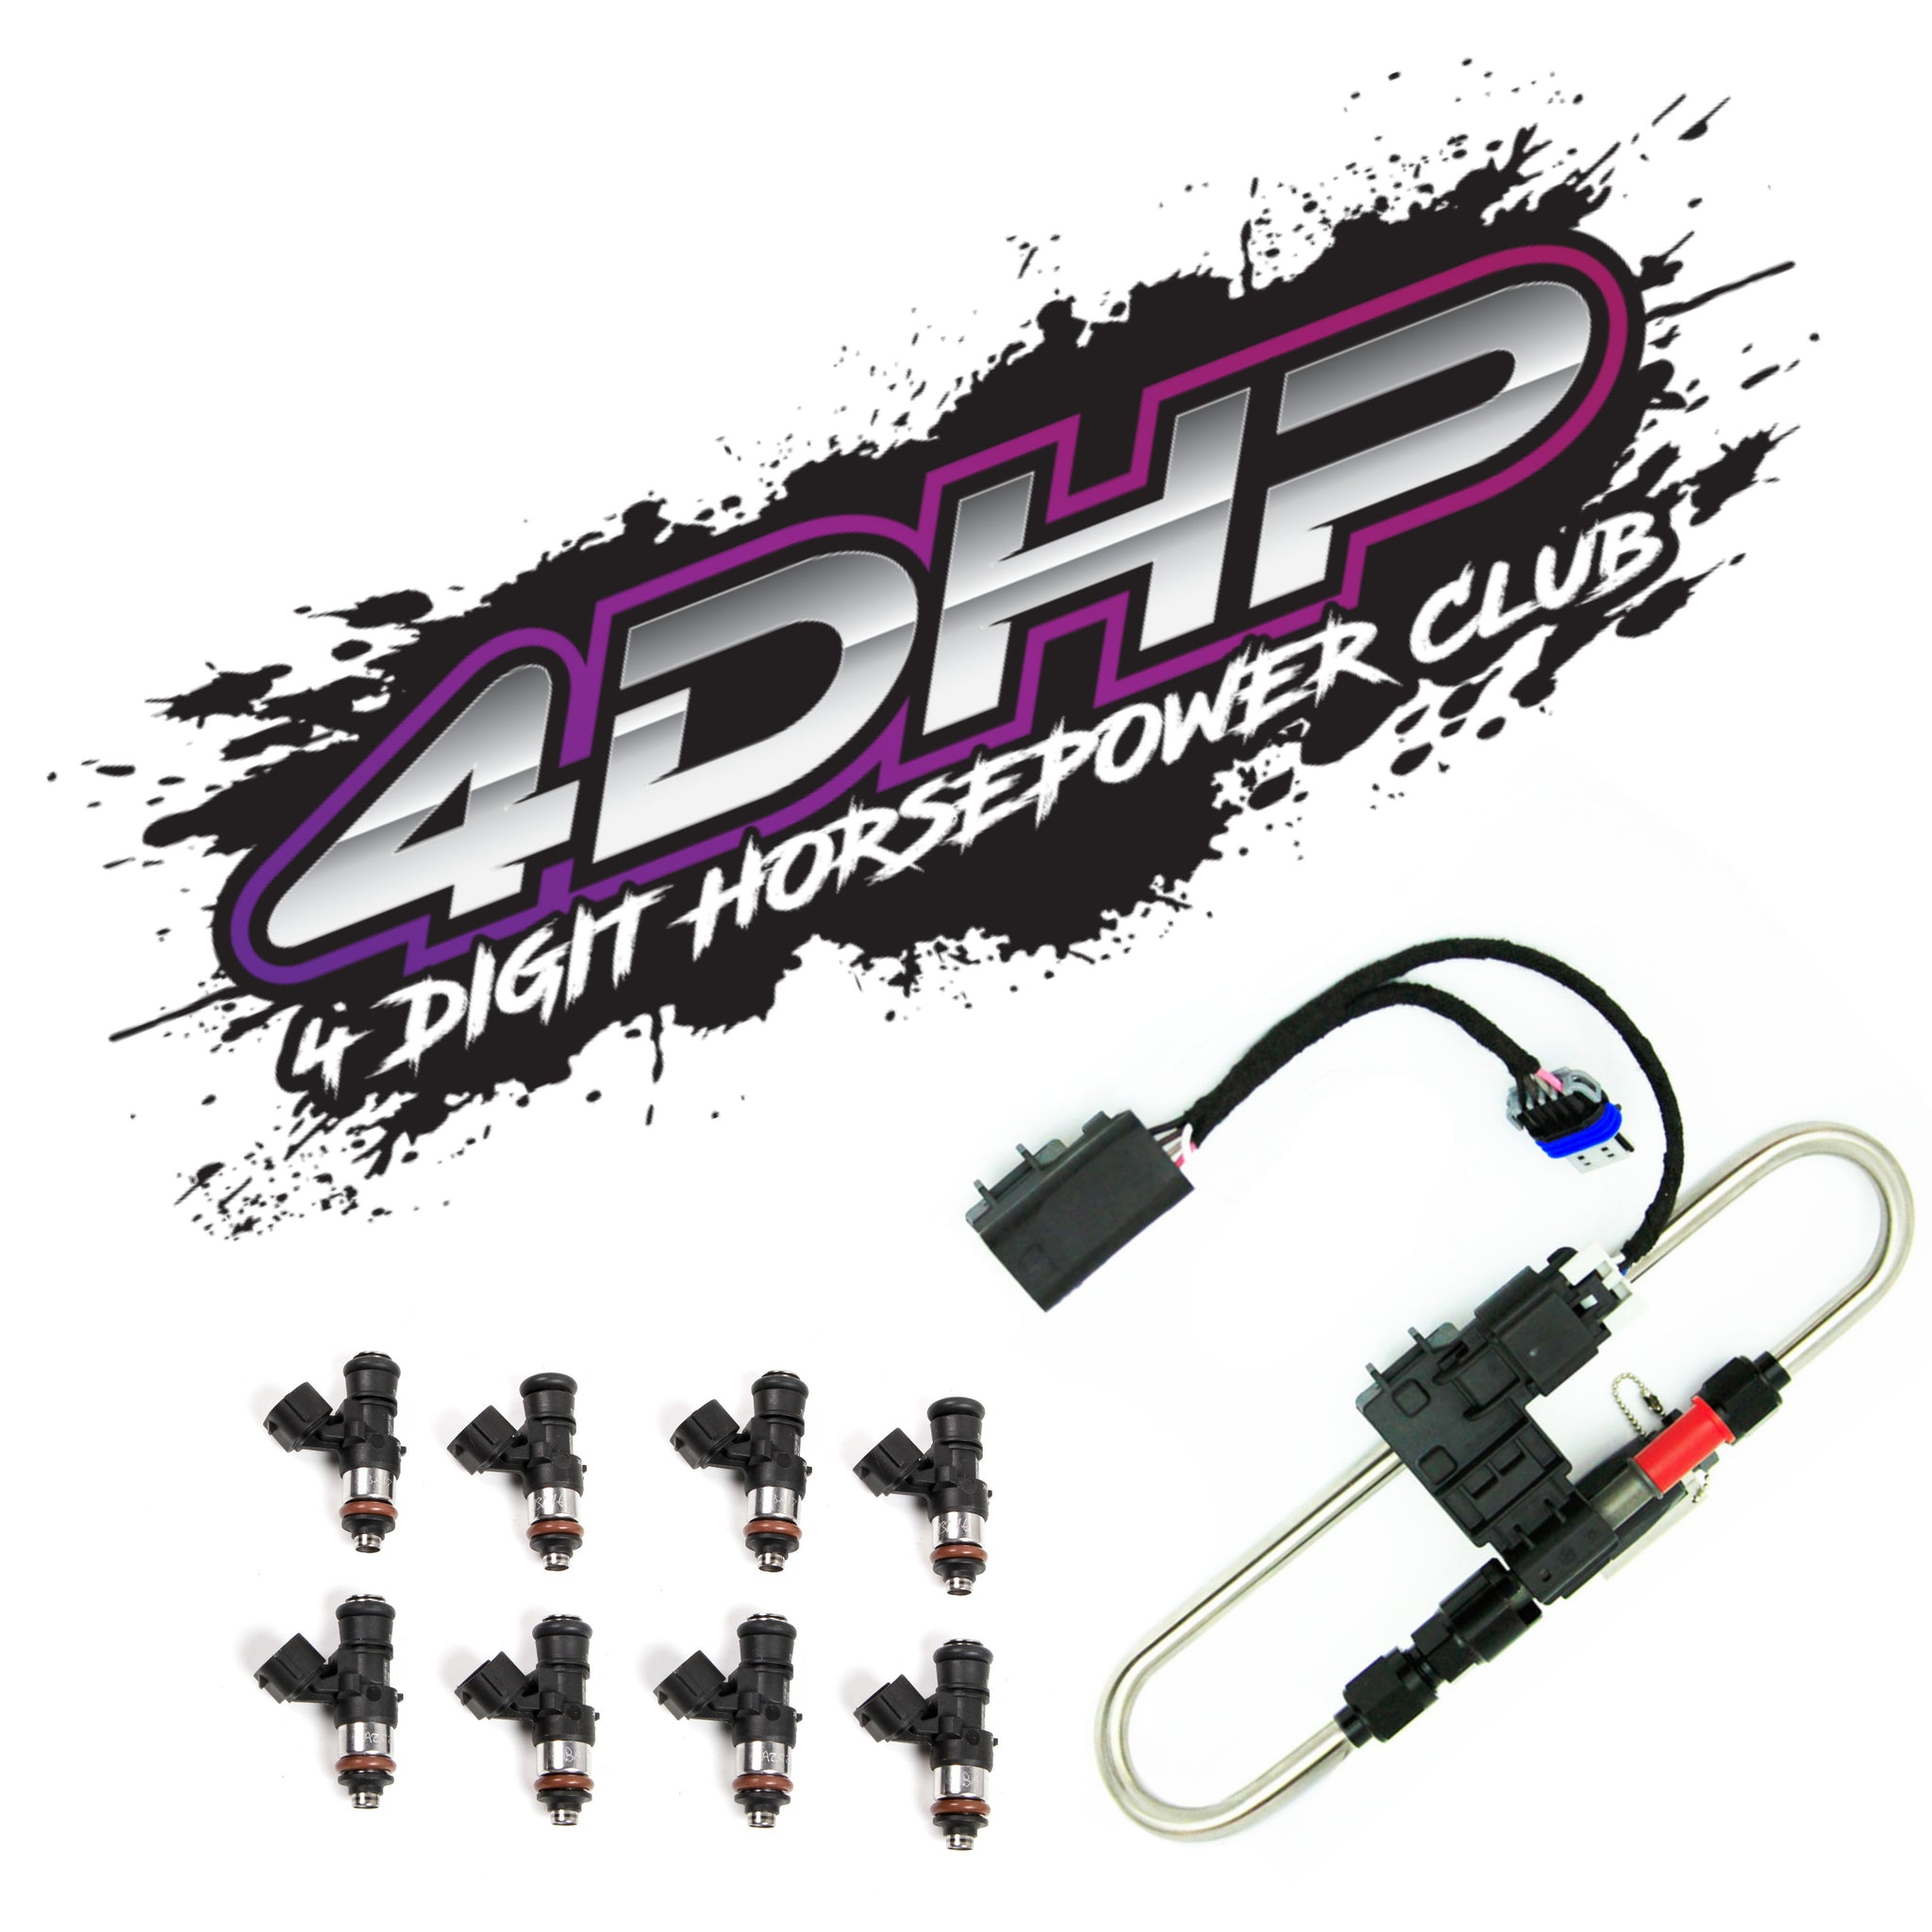 4DHPClub Flex Fuel E85 / Injector of choice combo package